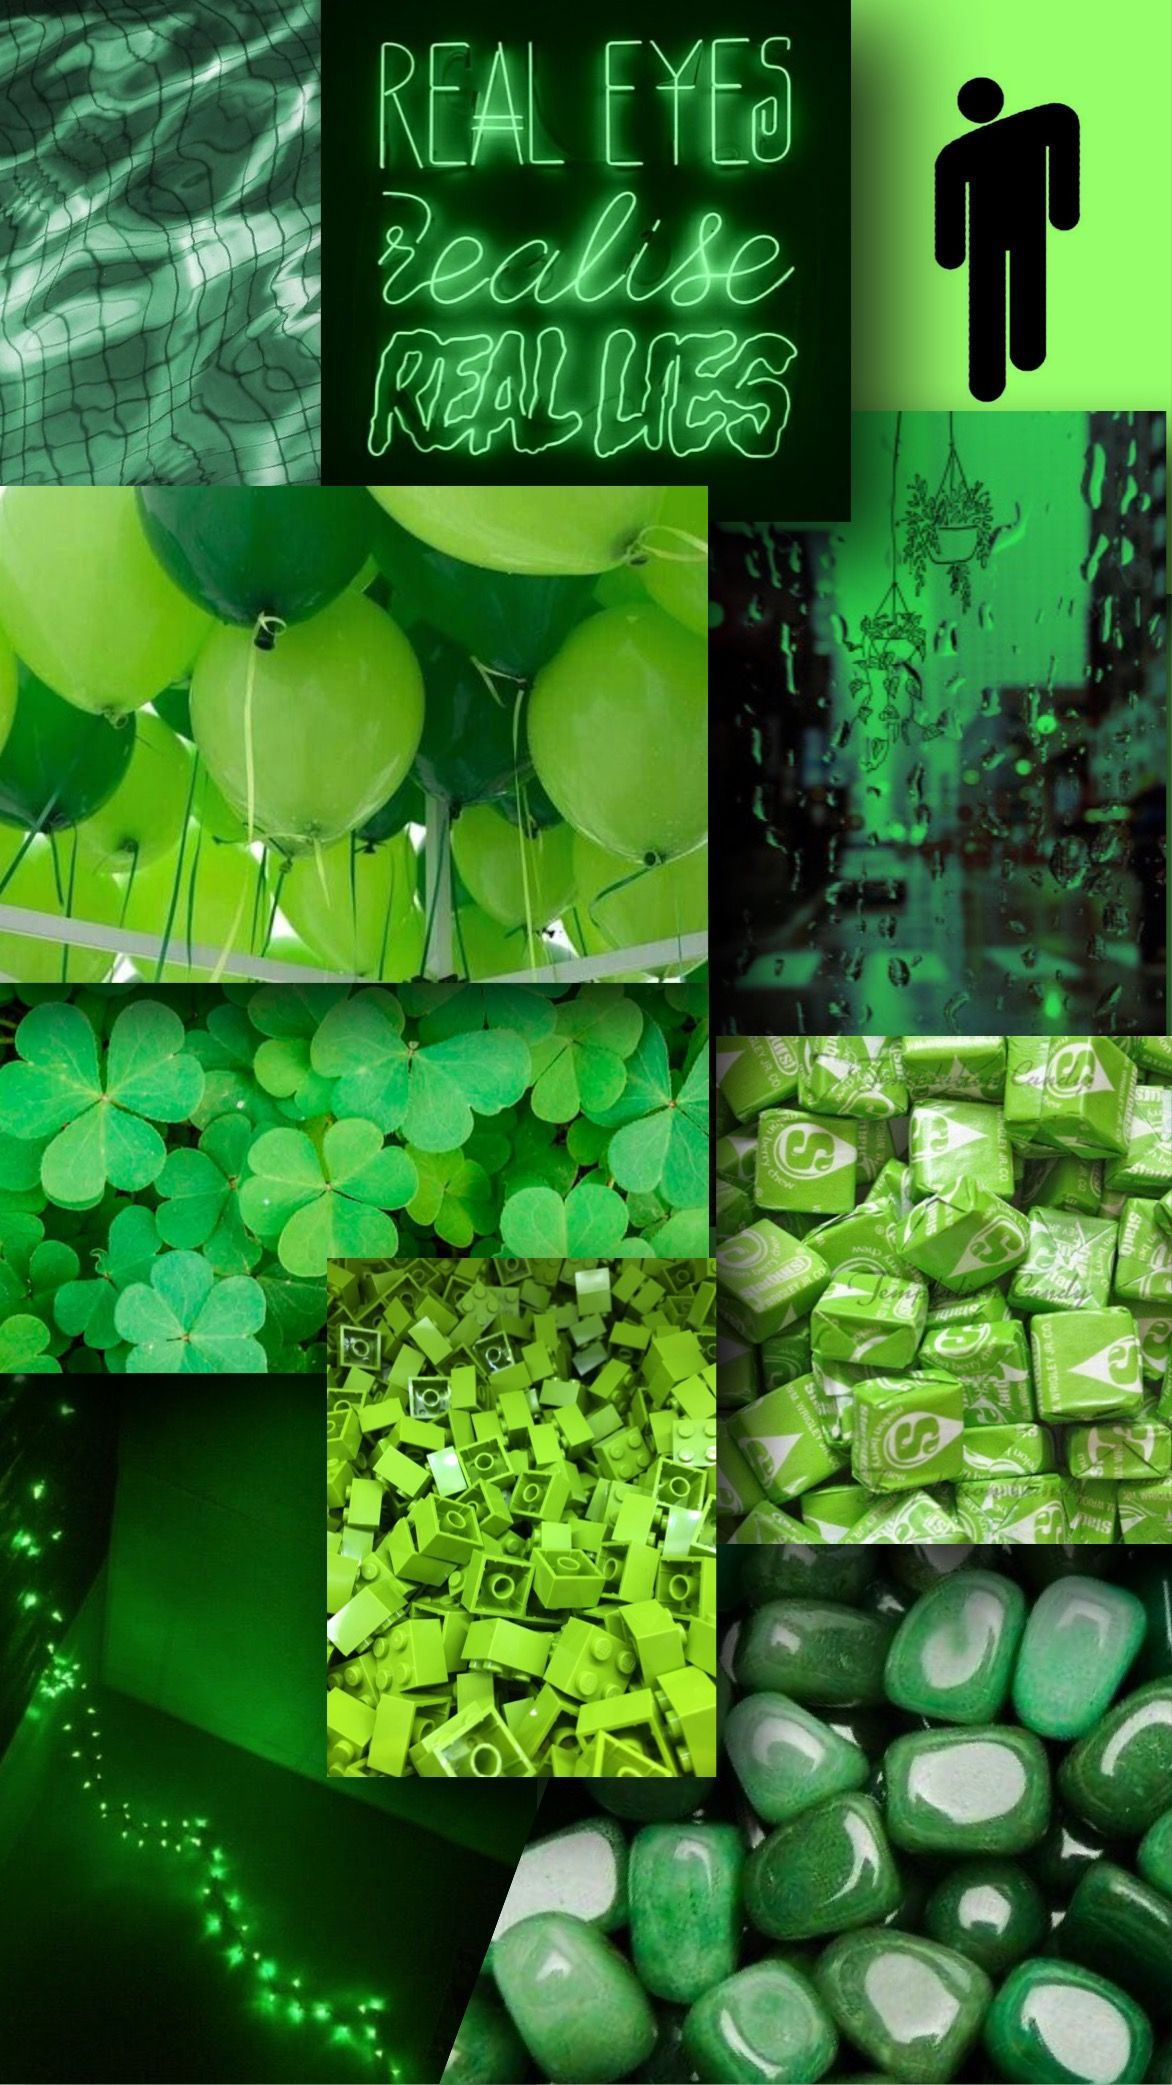 Green In 2020 Green Aesthetic Tumblr Cute Wallpaper Backgrounds Aesthetic Iphone Wallpaper